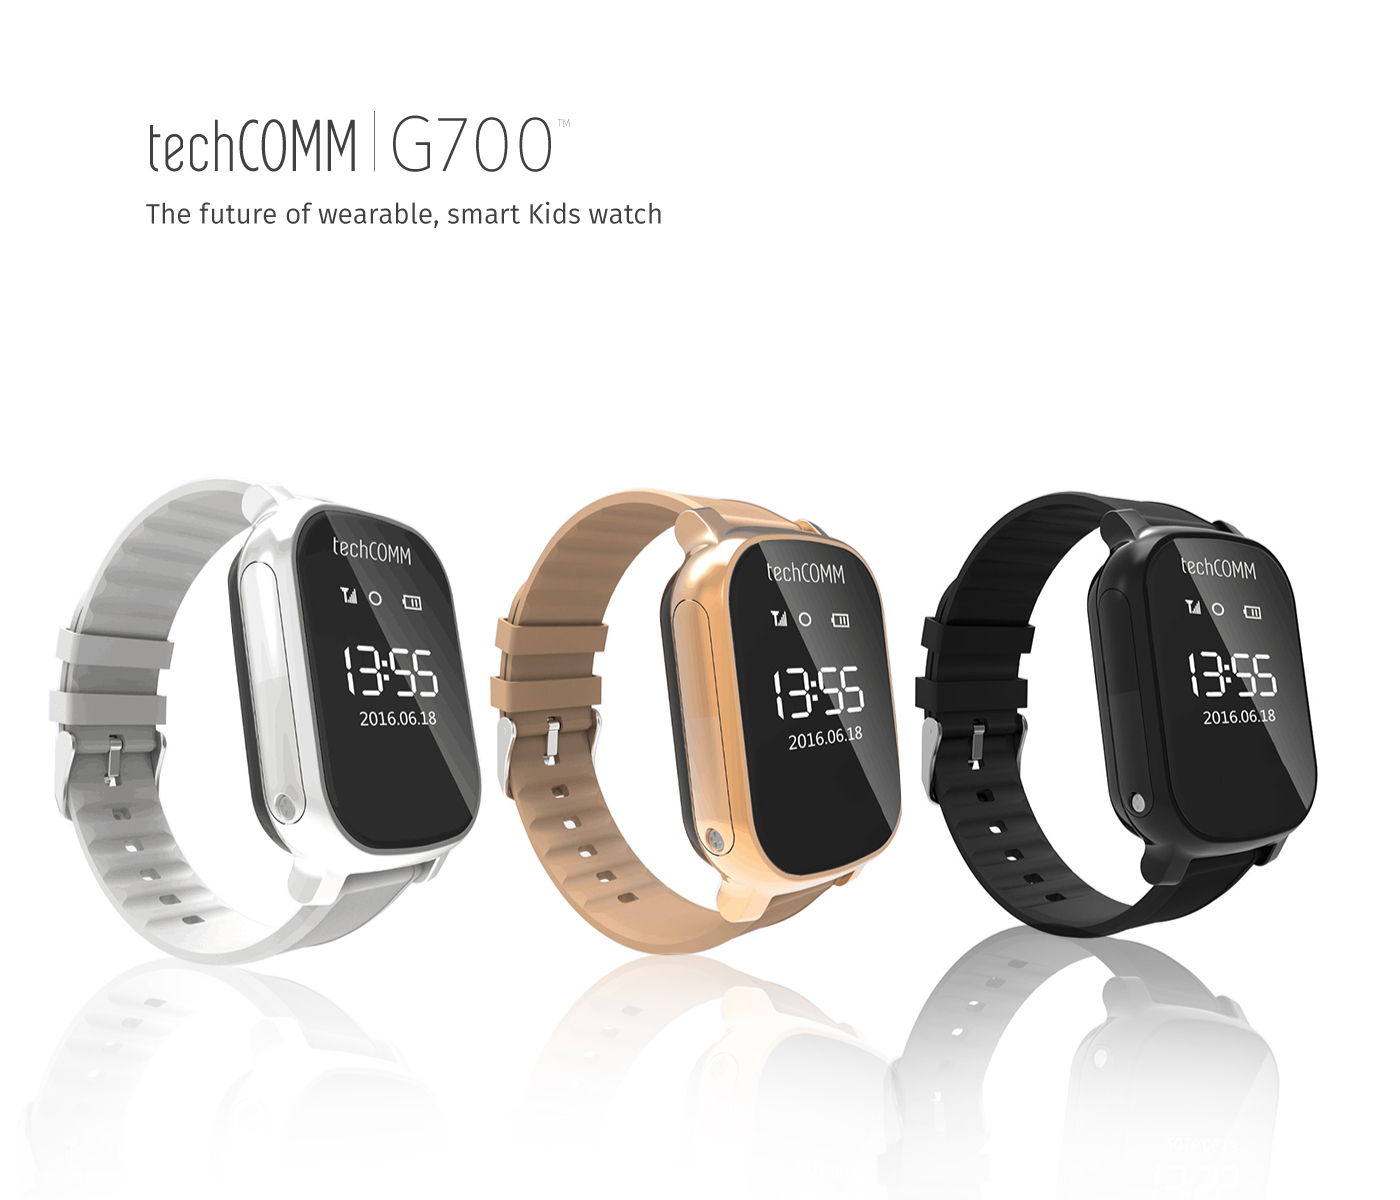 TechComm G700 Kid Tracker Watch for T-Mobile ONLY with GPS and Geofencing by TechComm